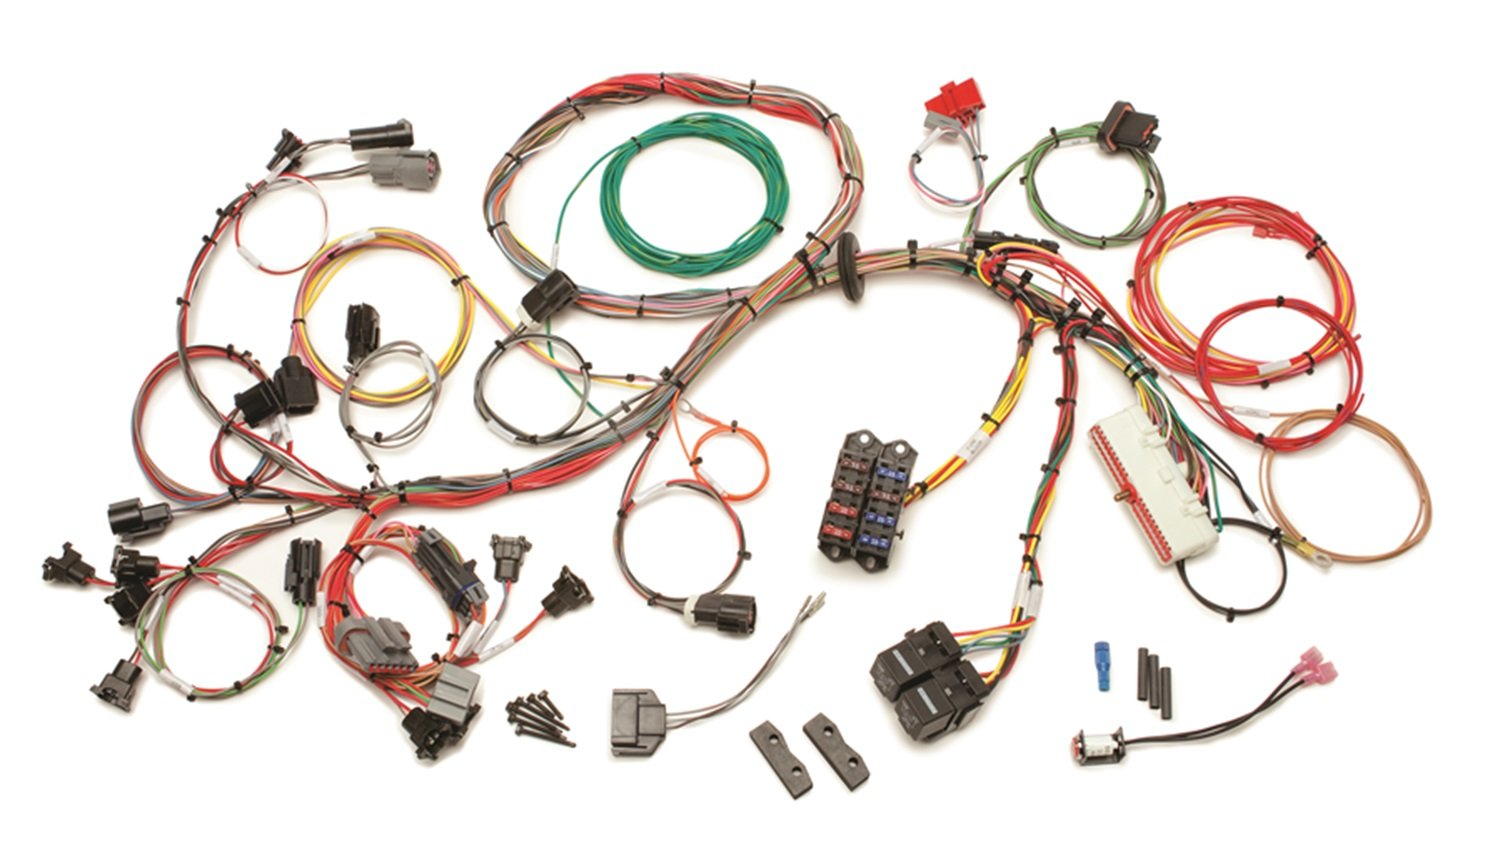 71UX1IBfleL._SL1500_ amazon com painless 60510 5 0l wiring harness automotive painless wiring harness at soozxer.org